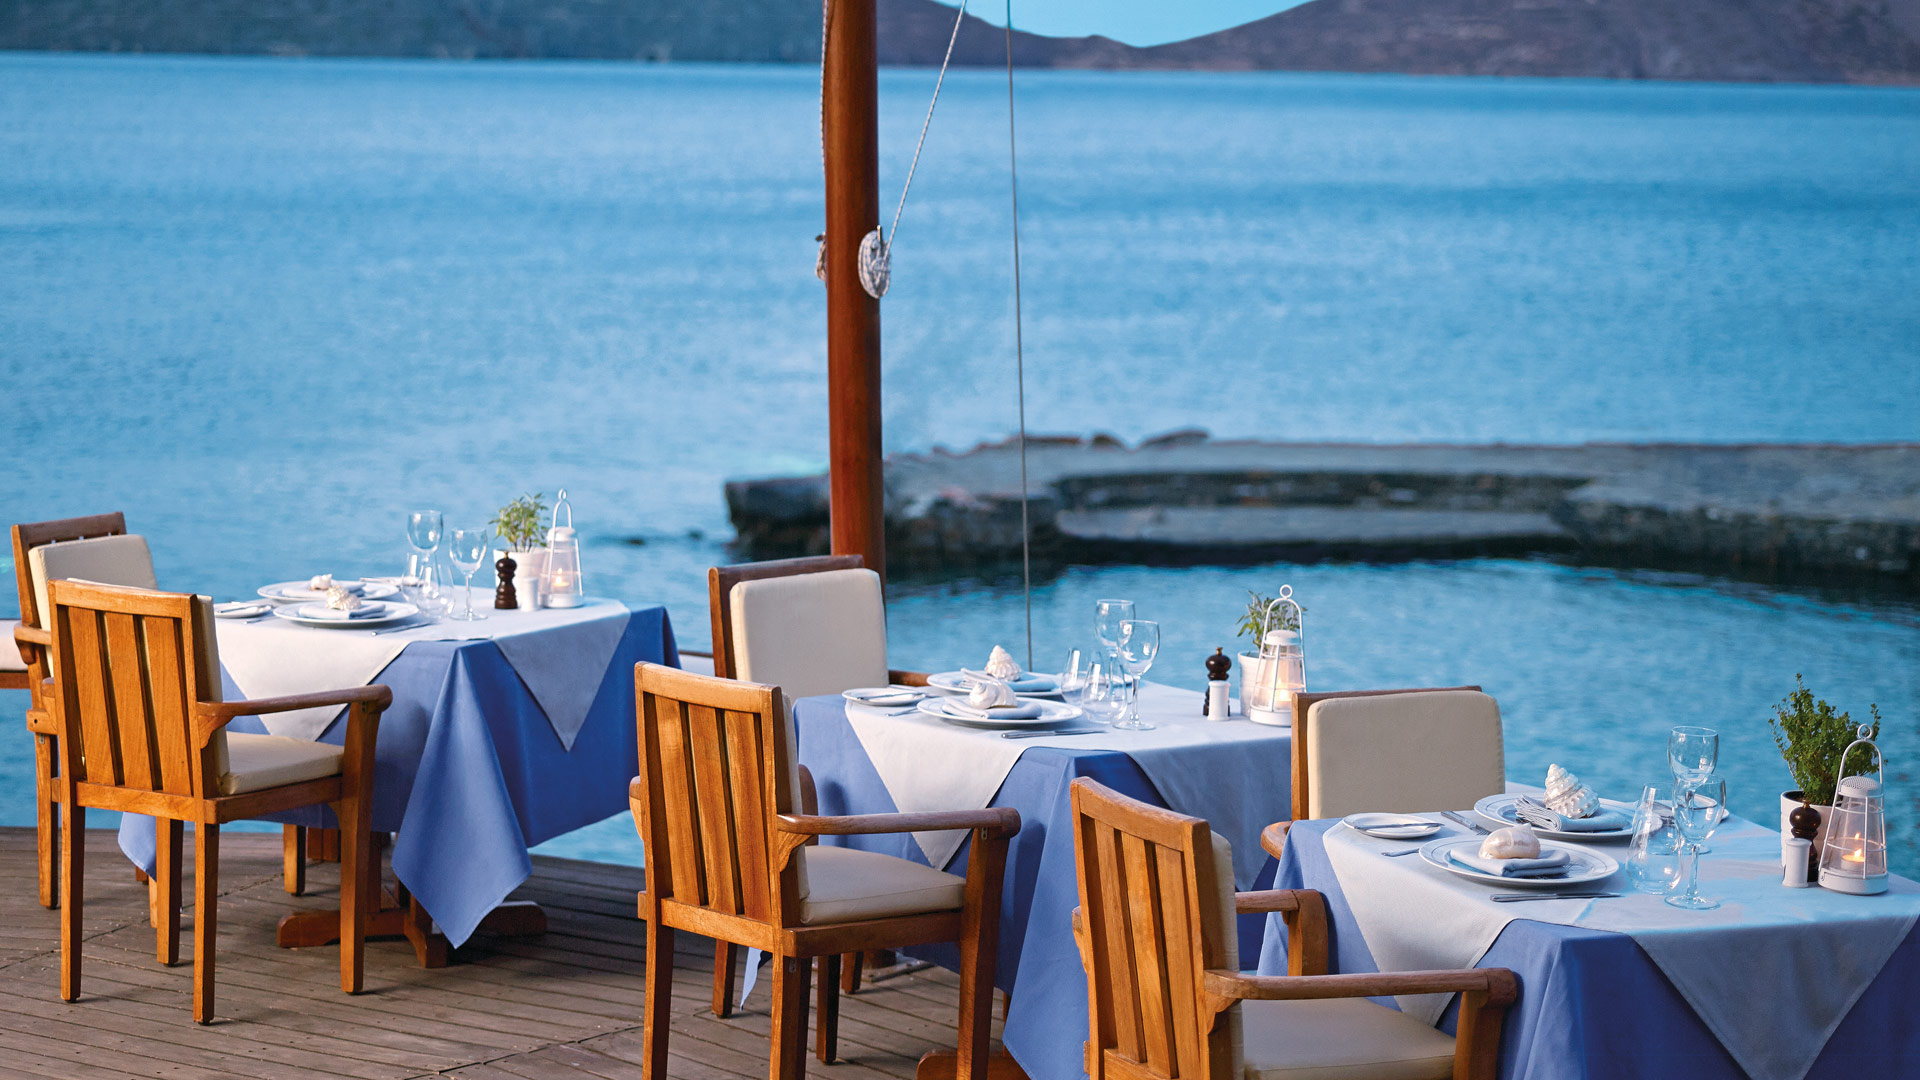 The Yacht Club Restaurant At Elounda Mare Hotel Perched On A Dramatic Edge And Overlooking Beach Below Serves Dinner In Summer Months With